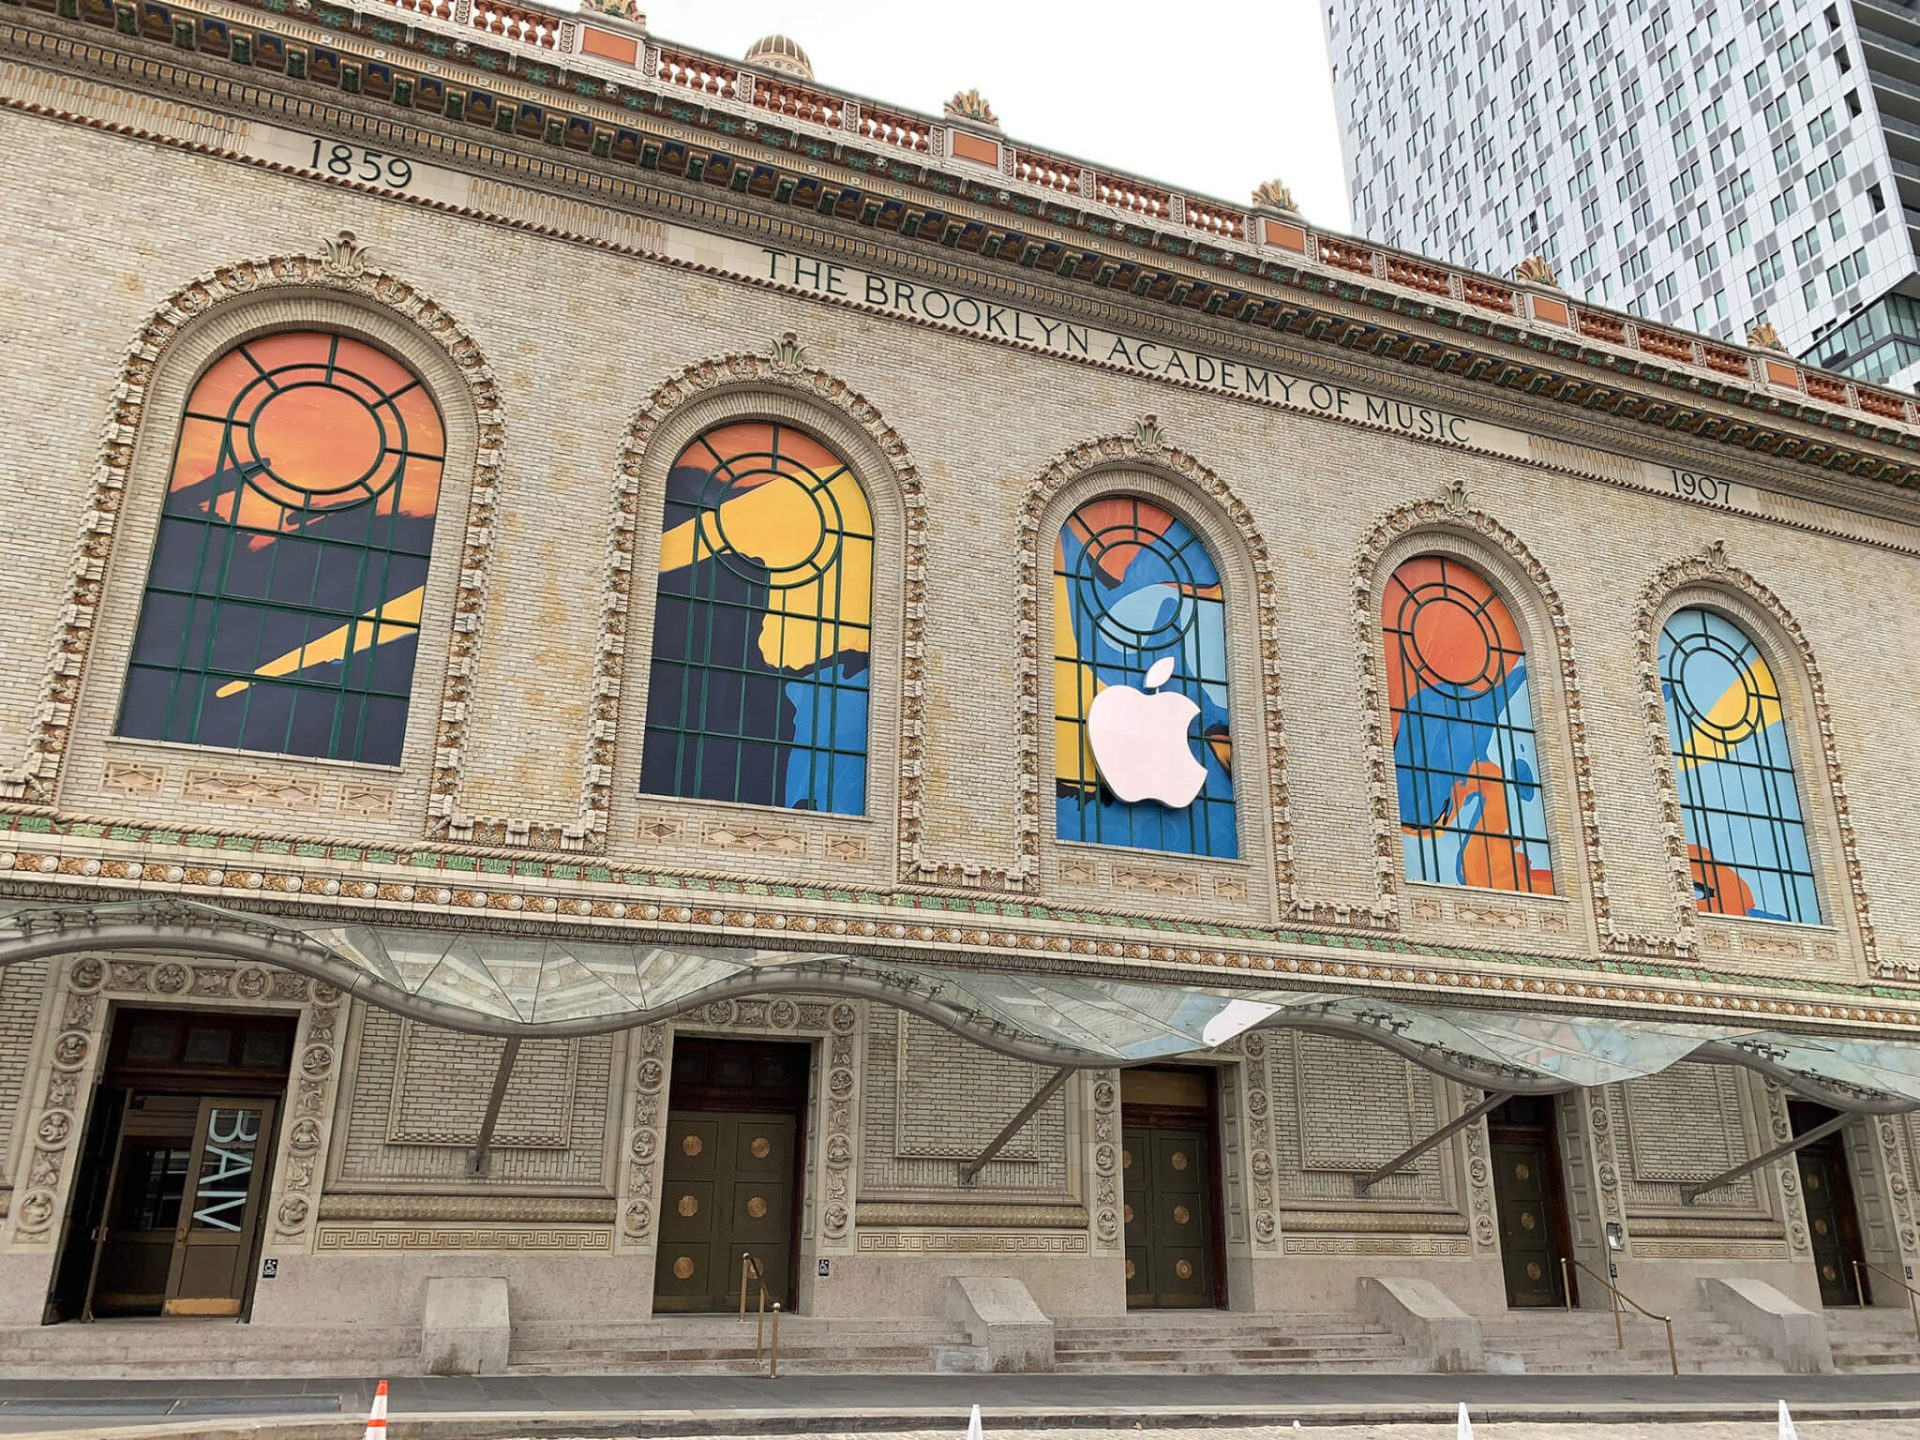 the brooklyn academy of music apple - Apple guarda novidades para iPad e Mac no próximo dia 30